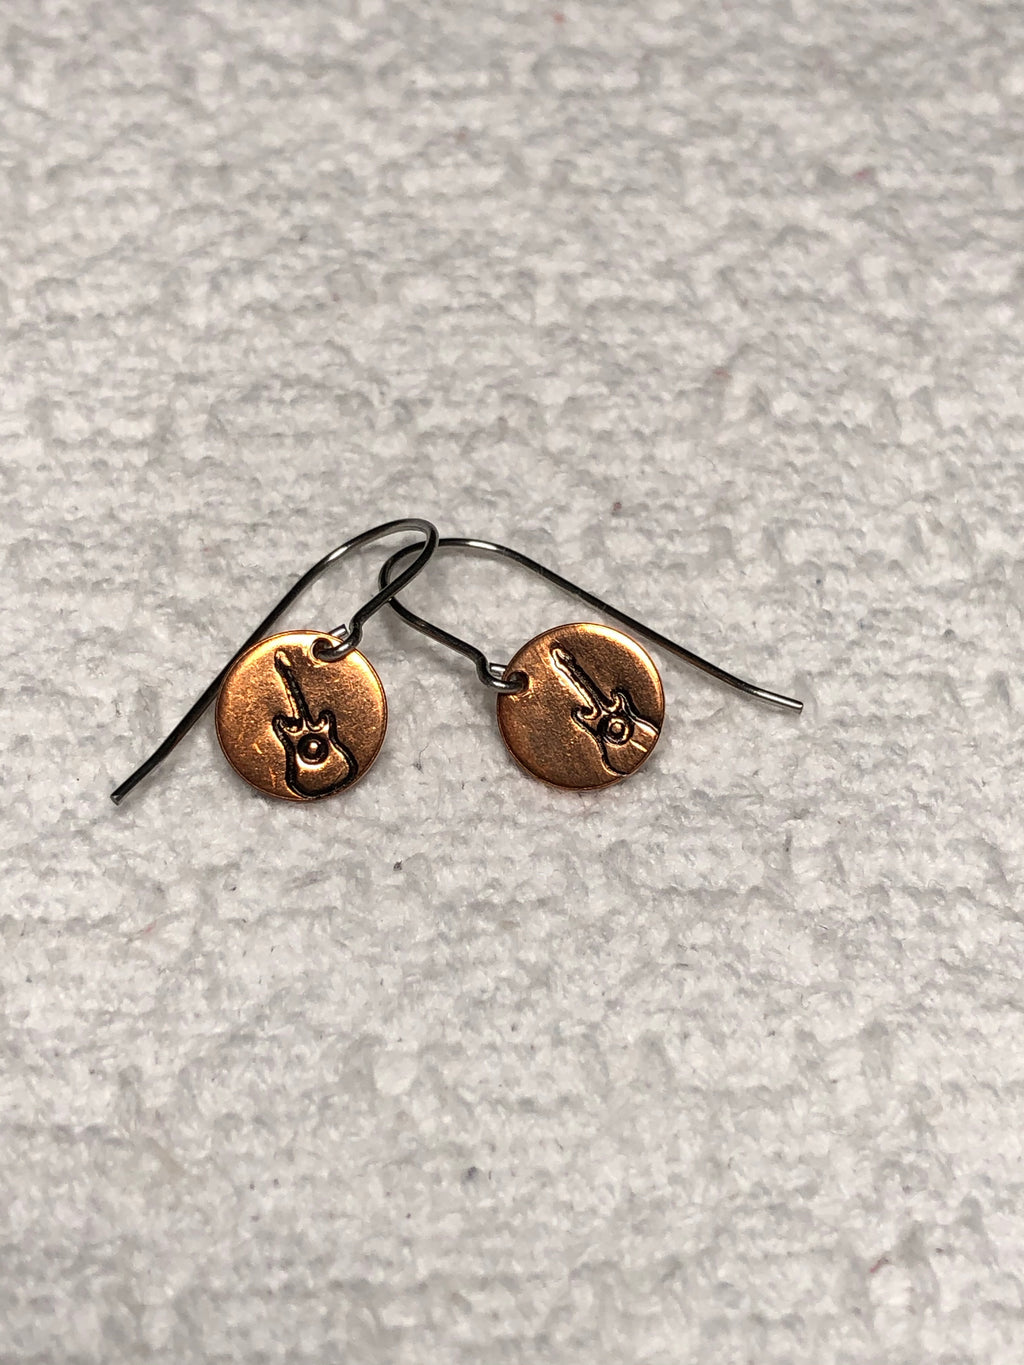 Copper & Steel Stamped Guitar Dangle Earrings